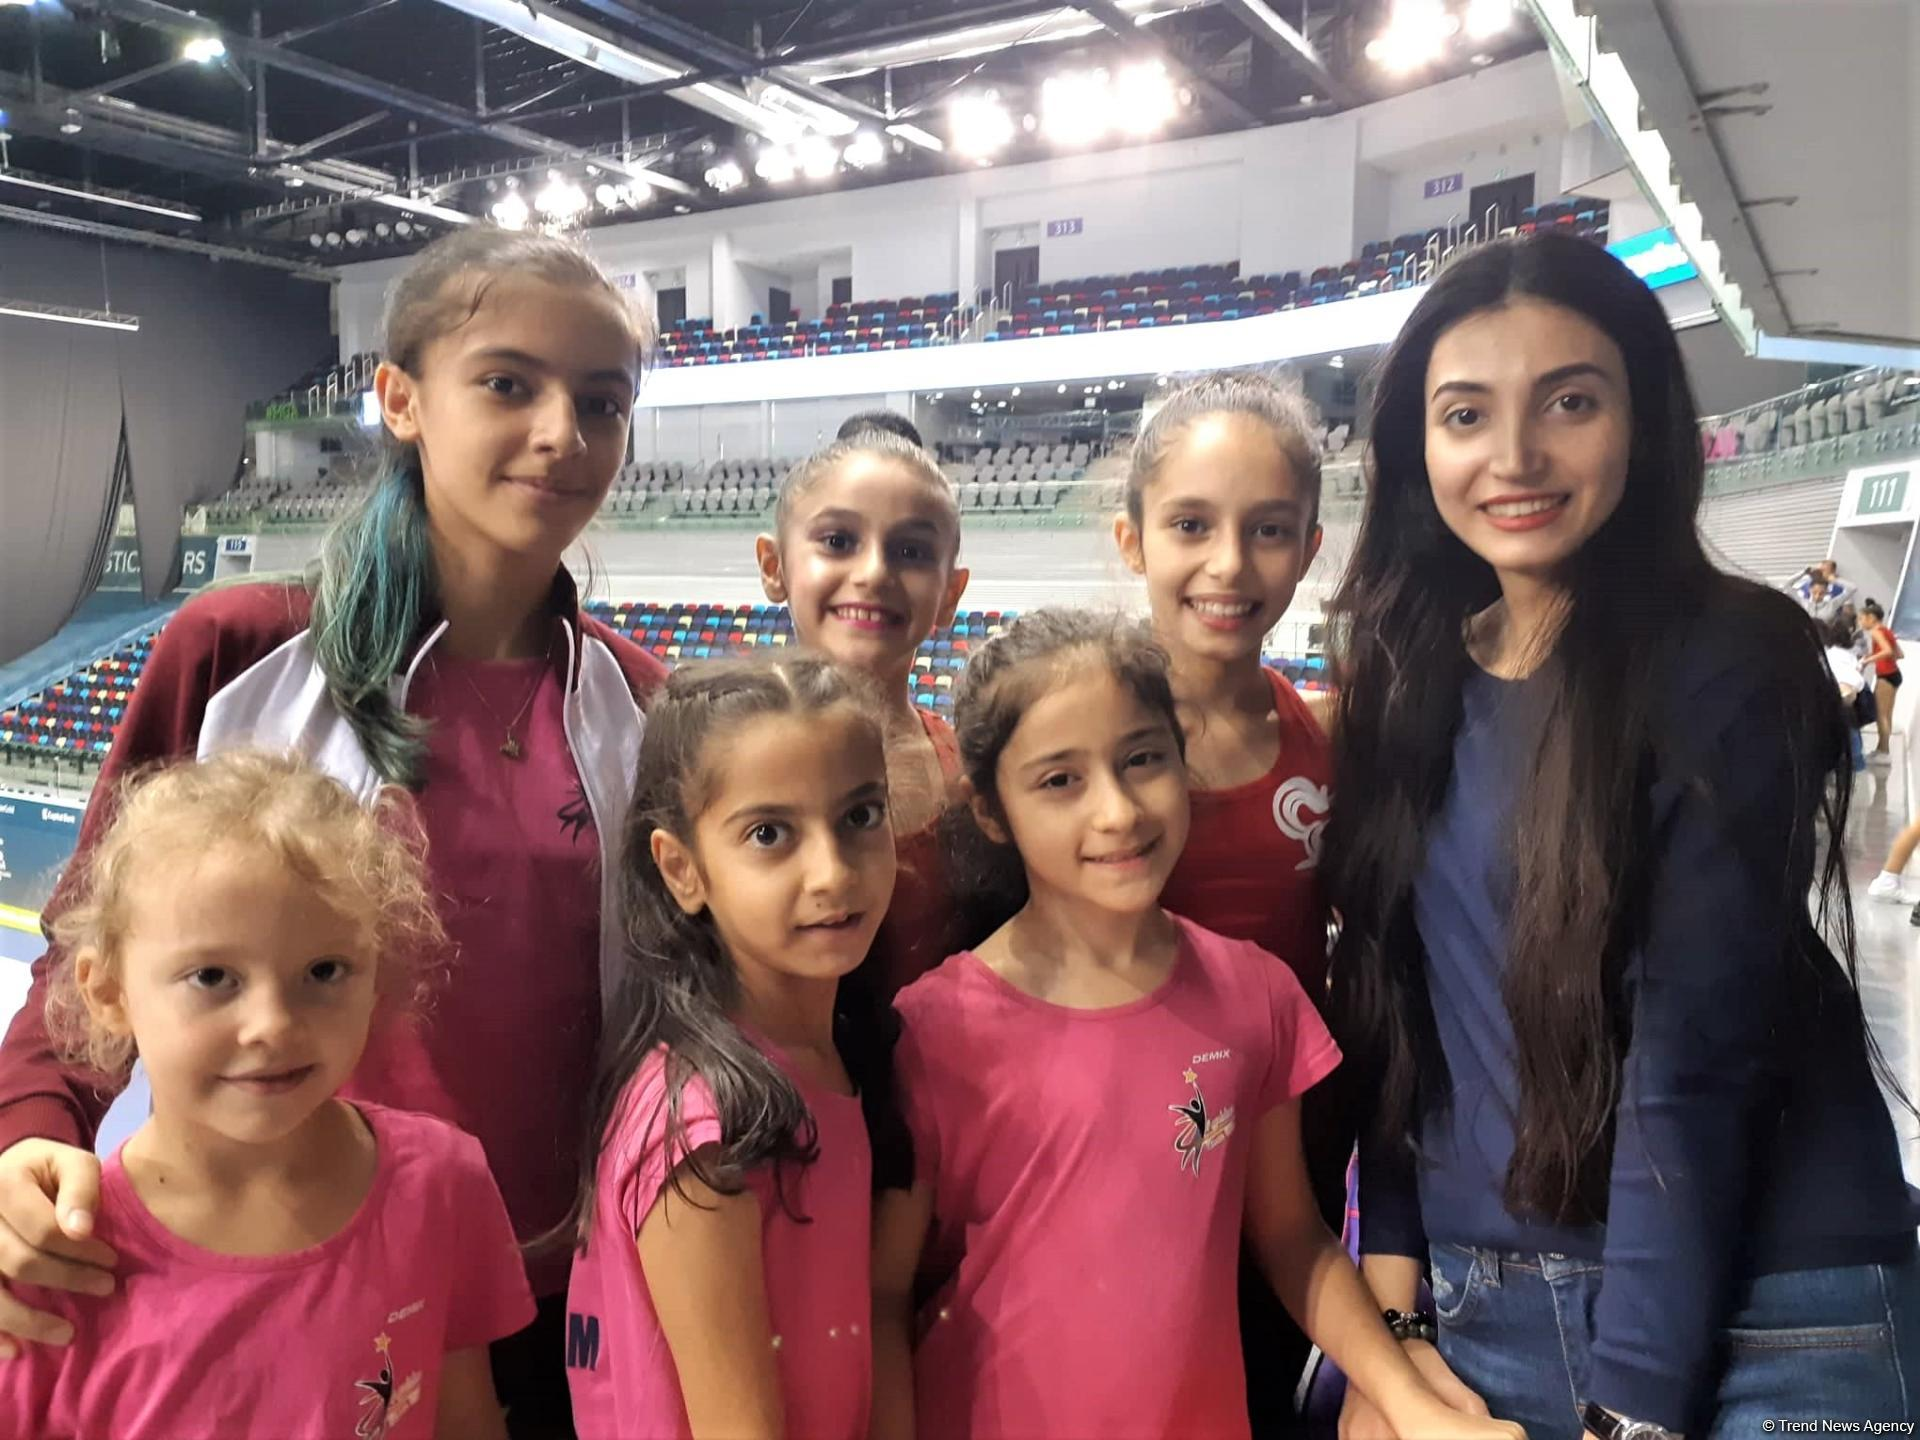 Audience support plays big role for gymnasts, says spectator of Baku Championships